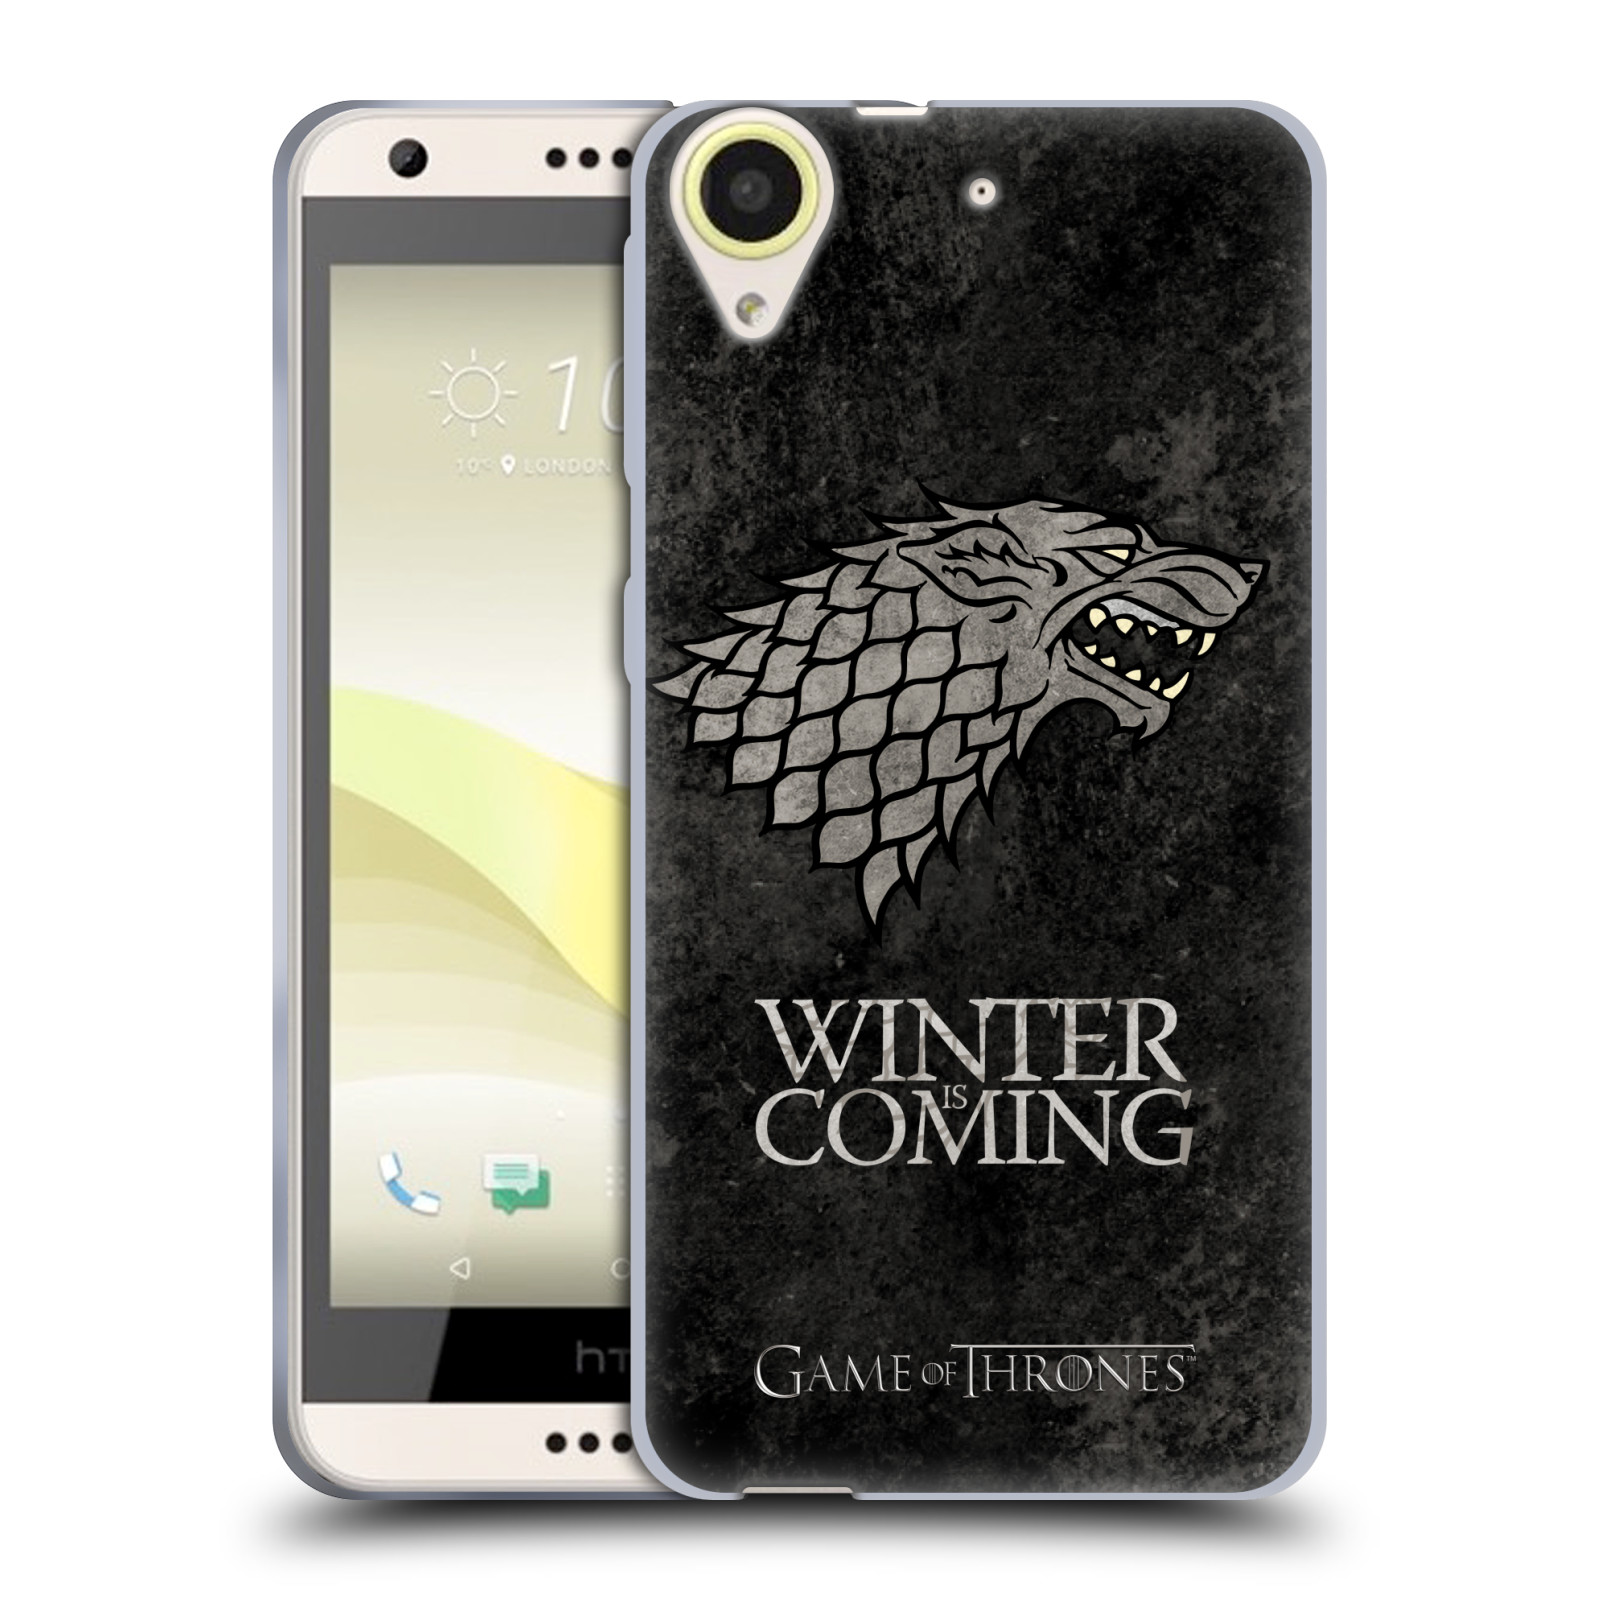 Silikonové pouzdro na mobil HTC Desire 650 HEAD CASE Hra o trůny - Stark - Winter is coming